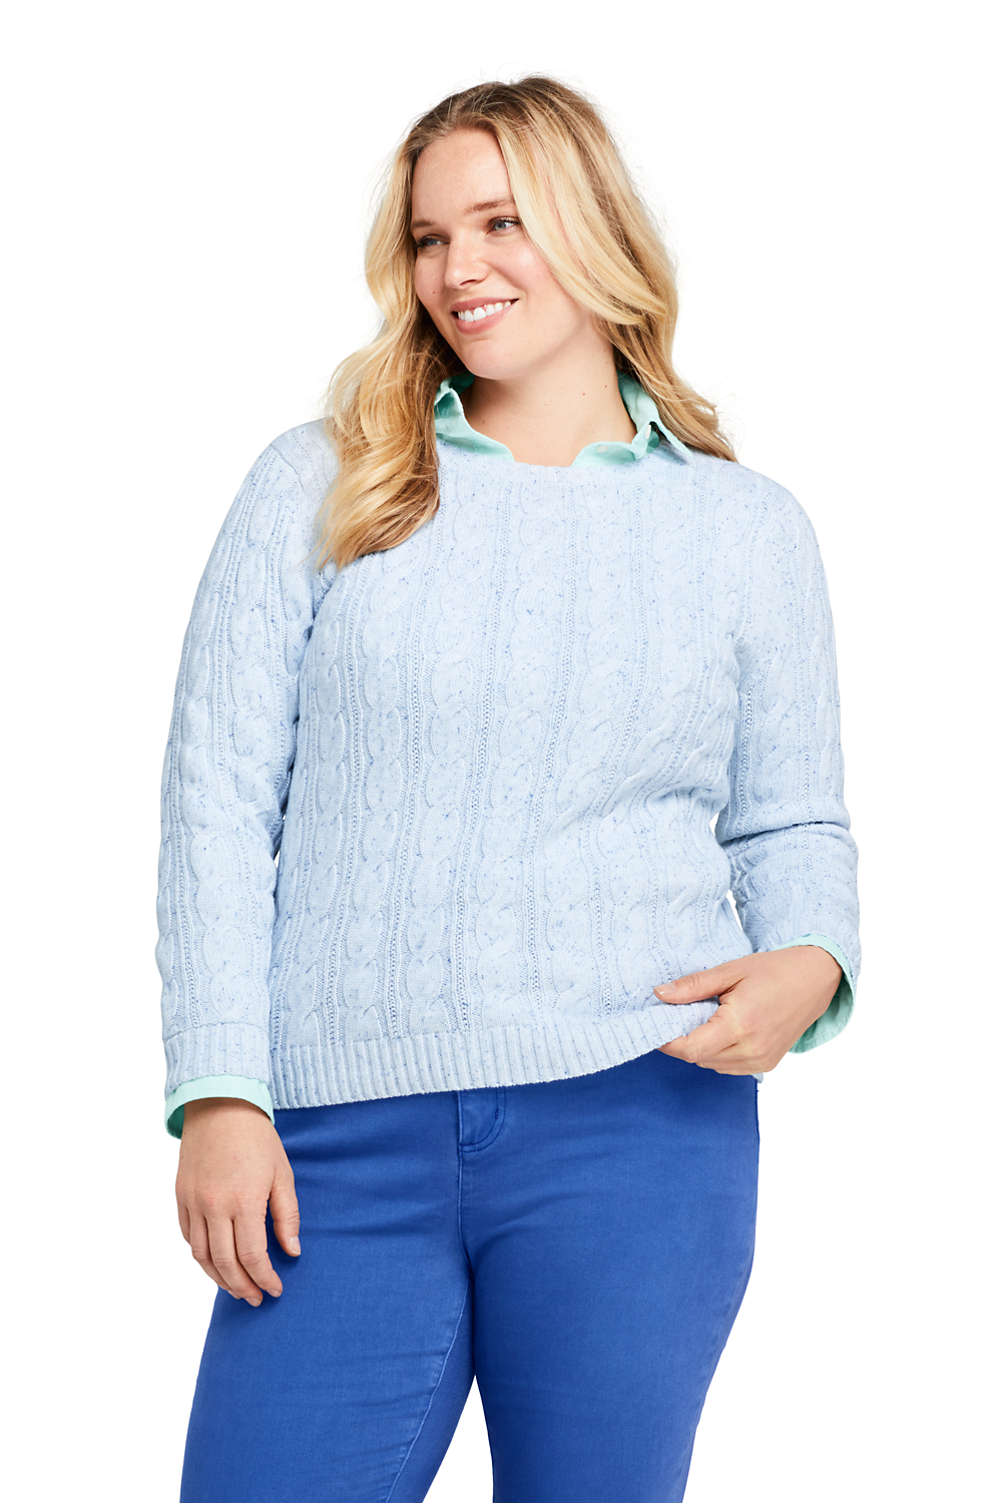 b0ab66e898 Women s Plus Size Drifter Cotton Cable Knit Sweater Crewneck from Lands  End